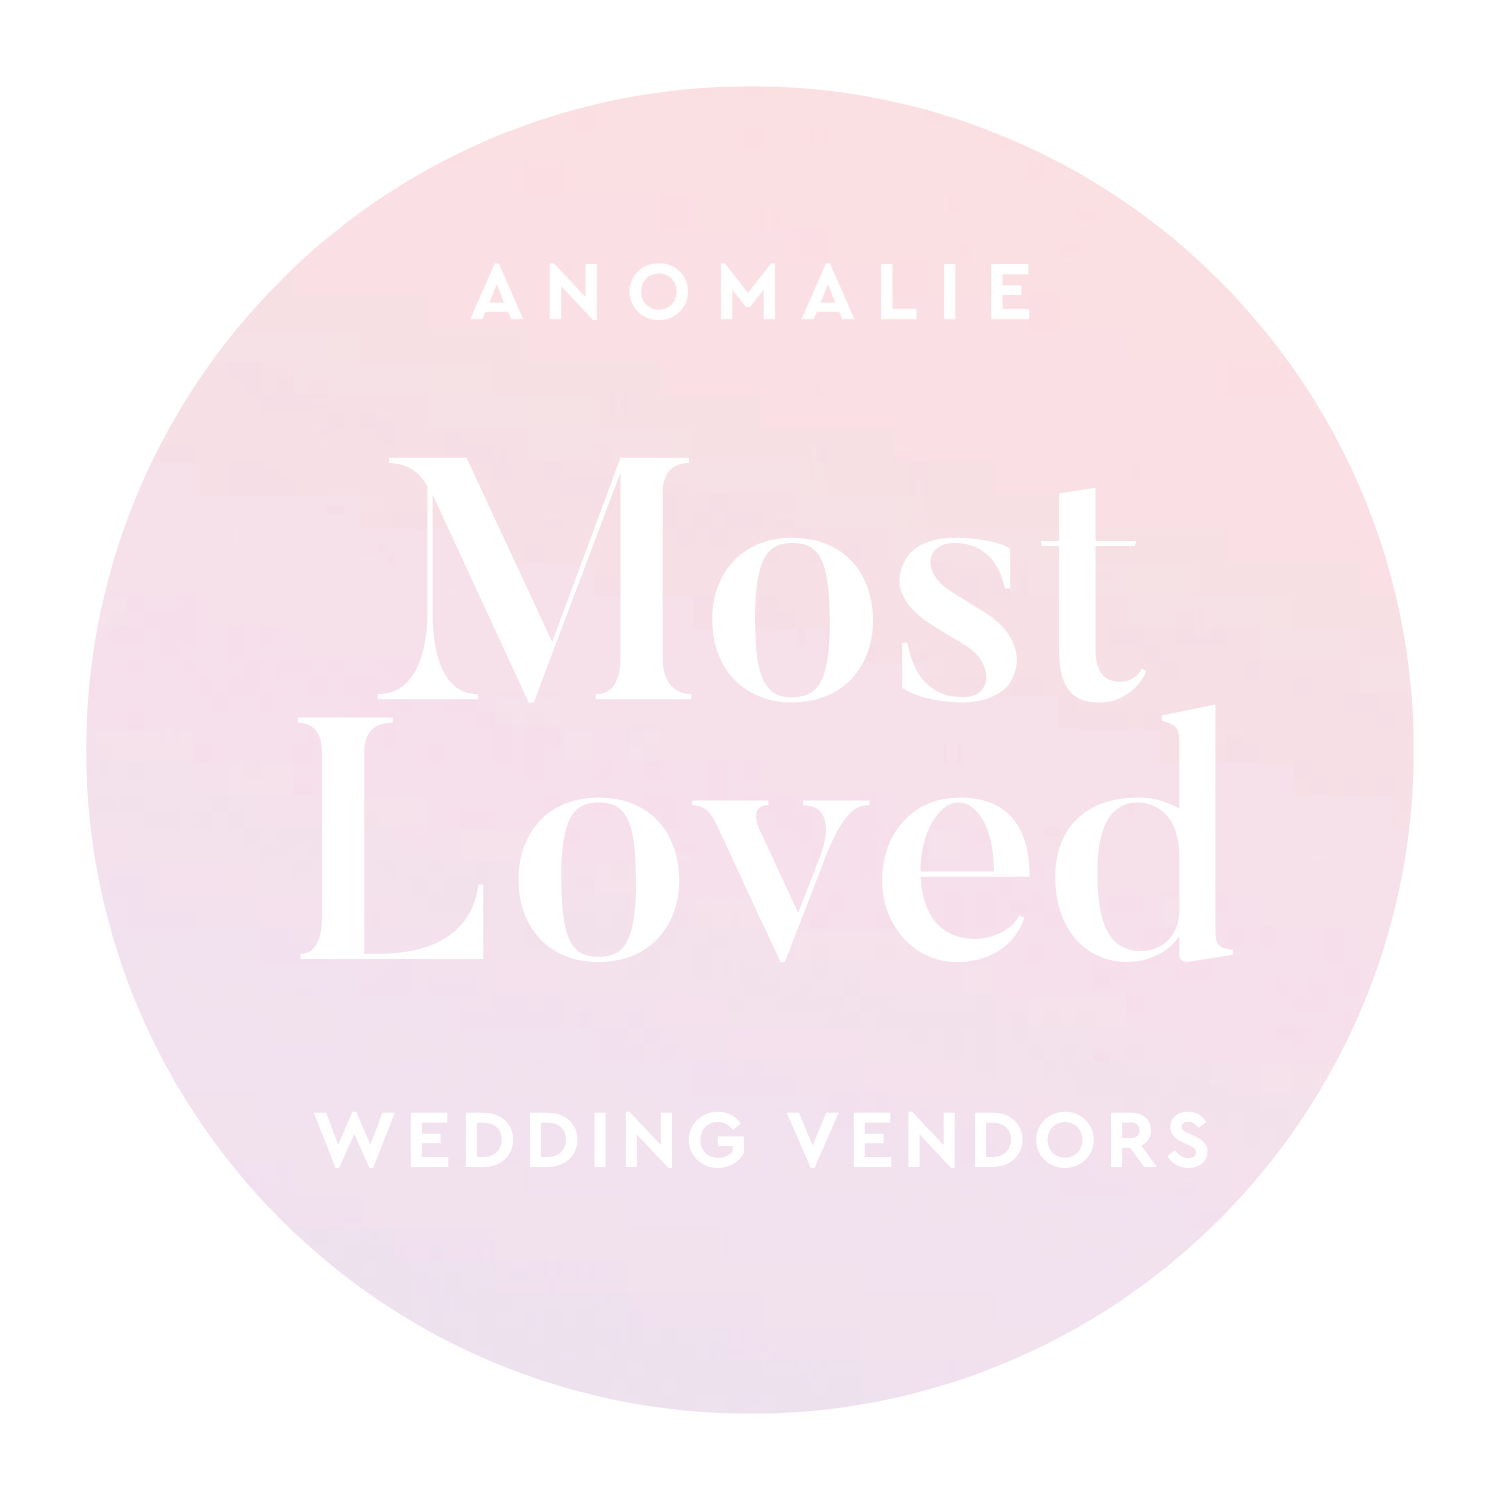 Anomalie Most Loved Design Company